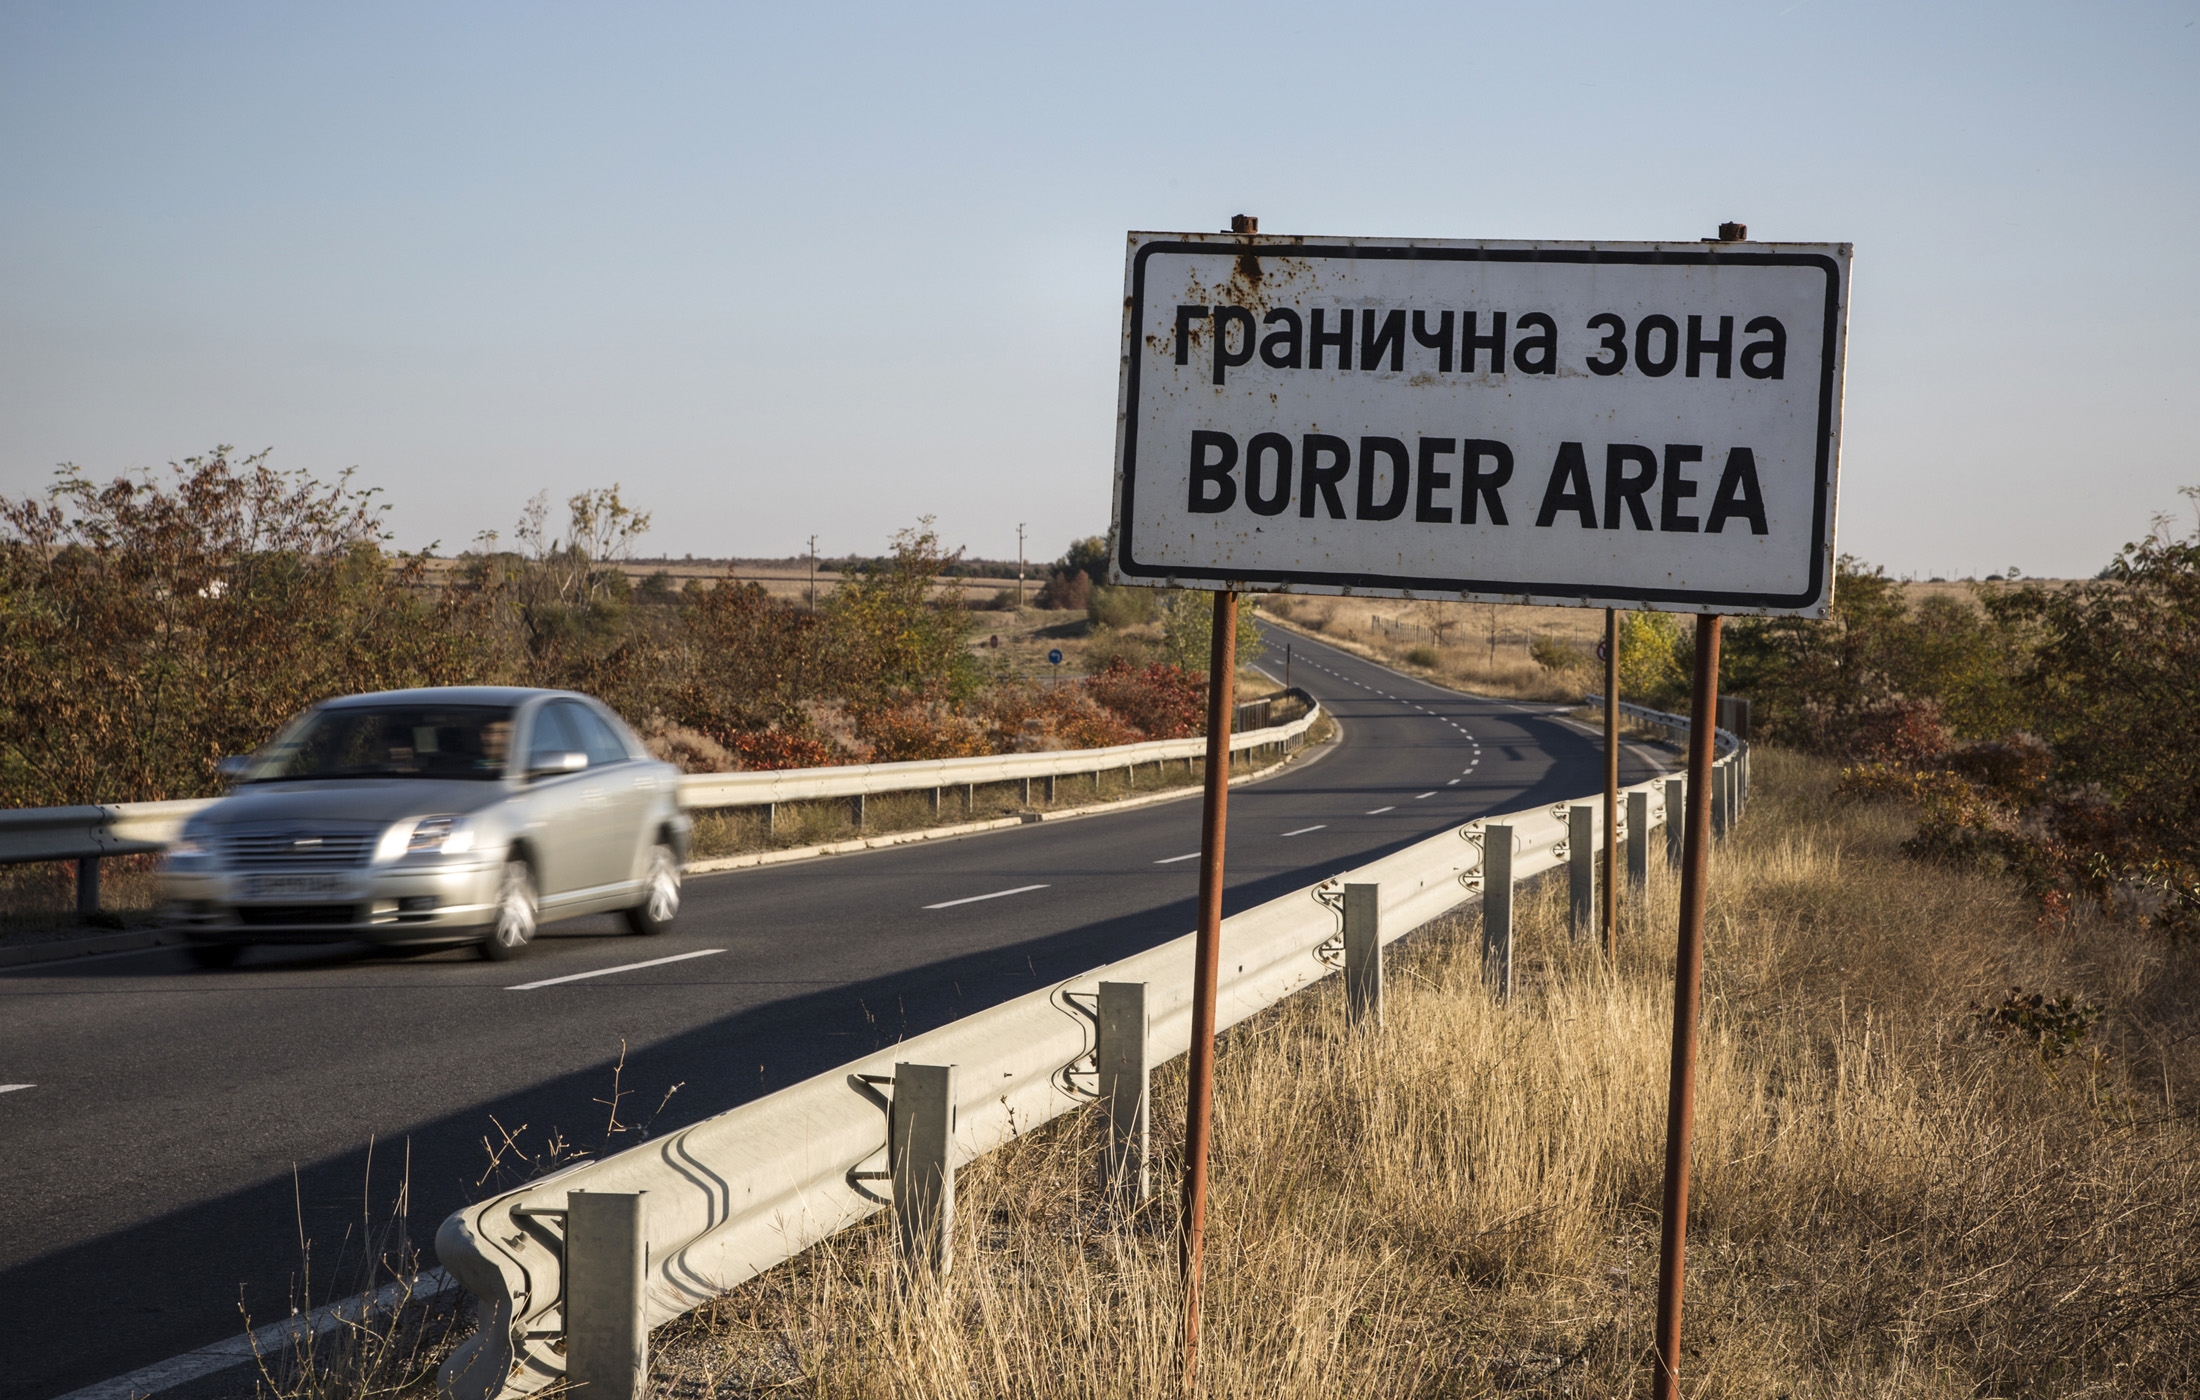 Bulgarian Interior Minister: Attempted illegal border crossings from Turkey, Greece increased in August-October